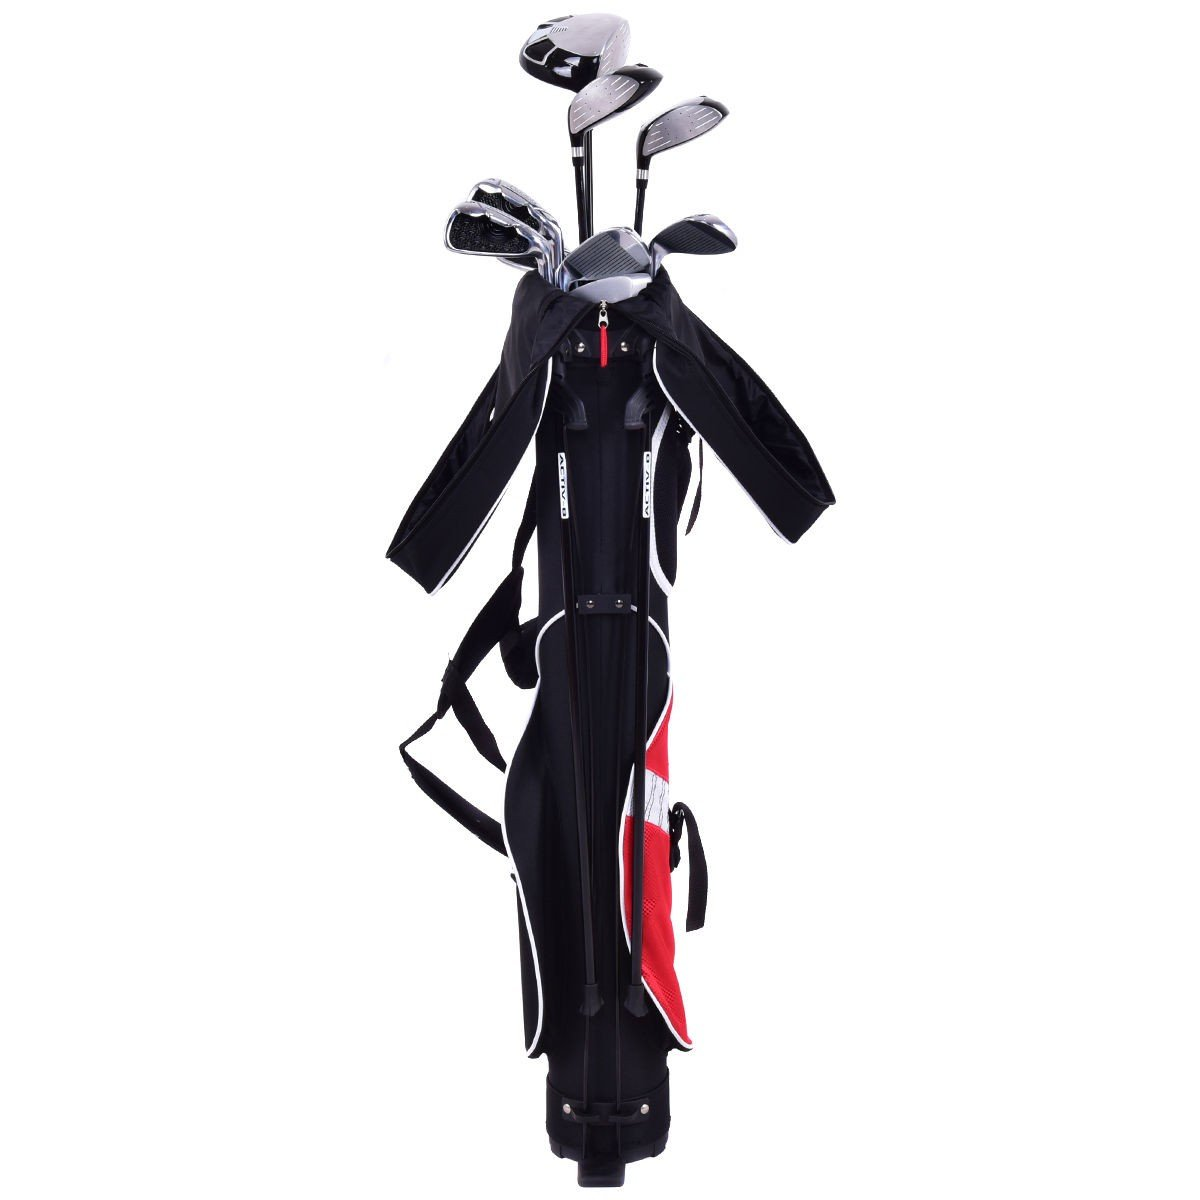 5'' Sunday Golf Bag Stand 7 Clubs Carry Pockets - By Choice Products